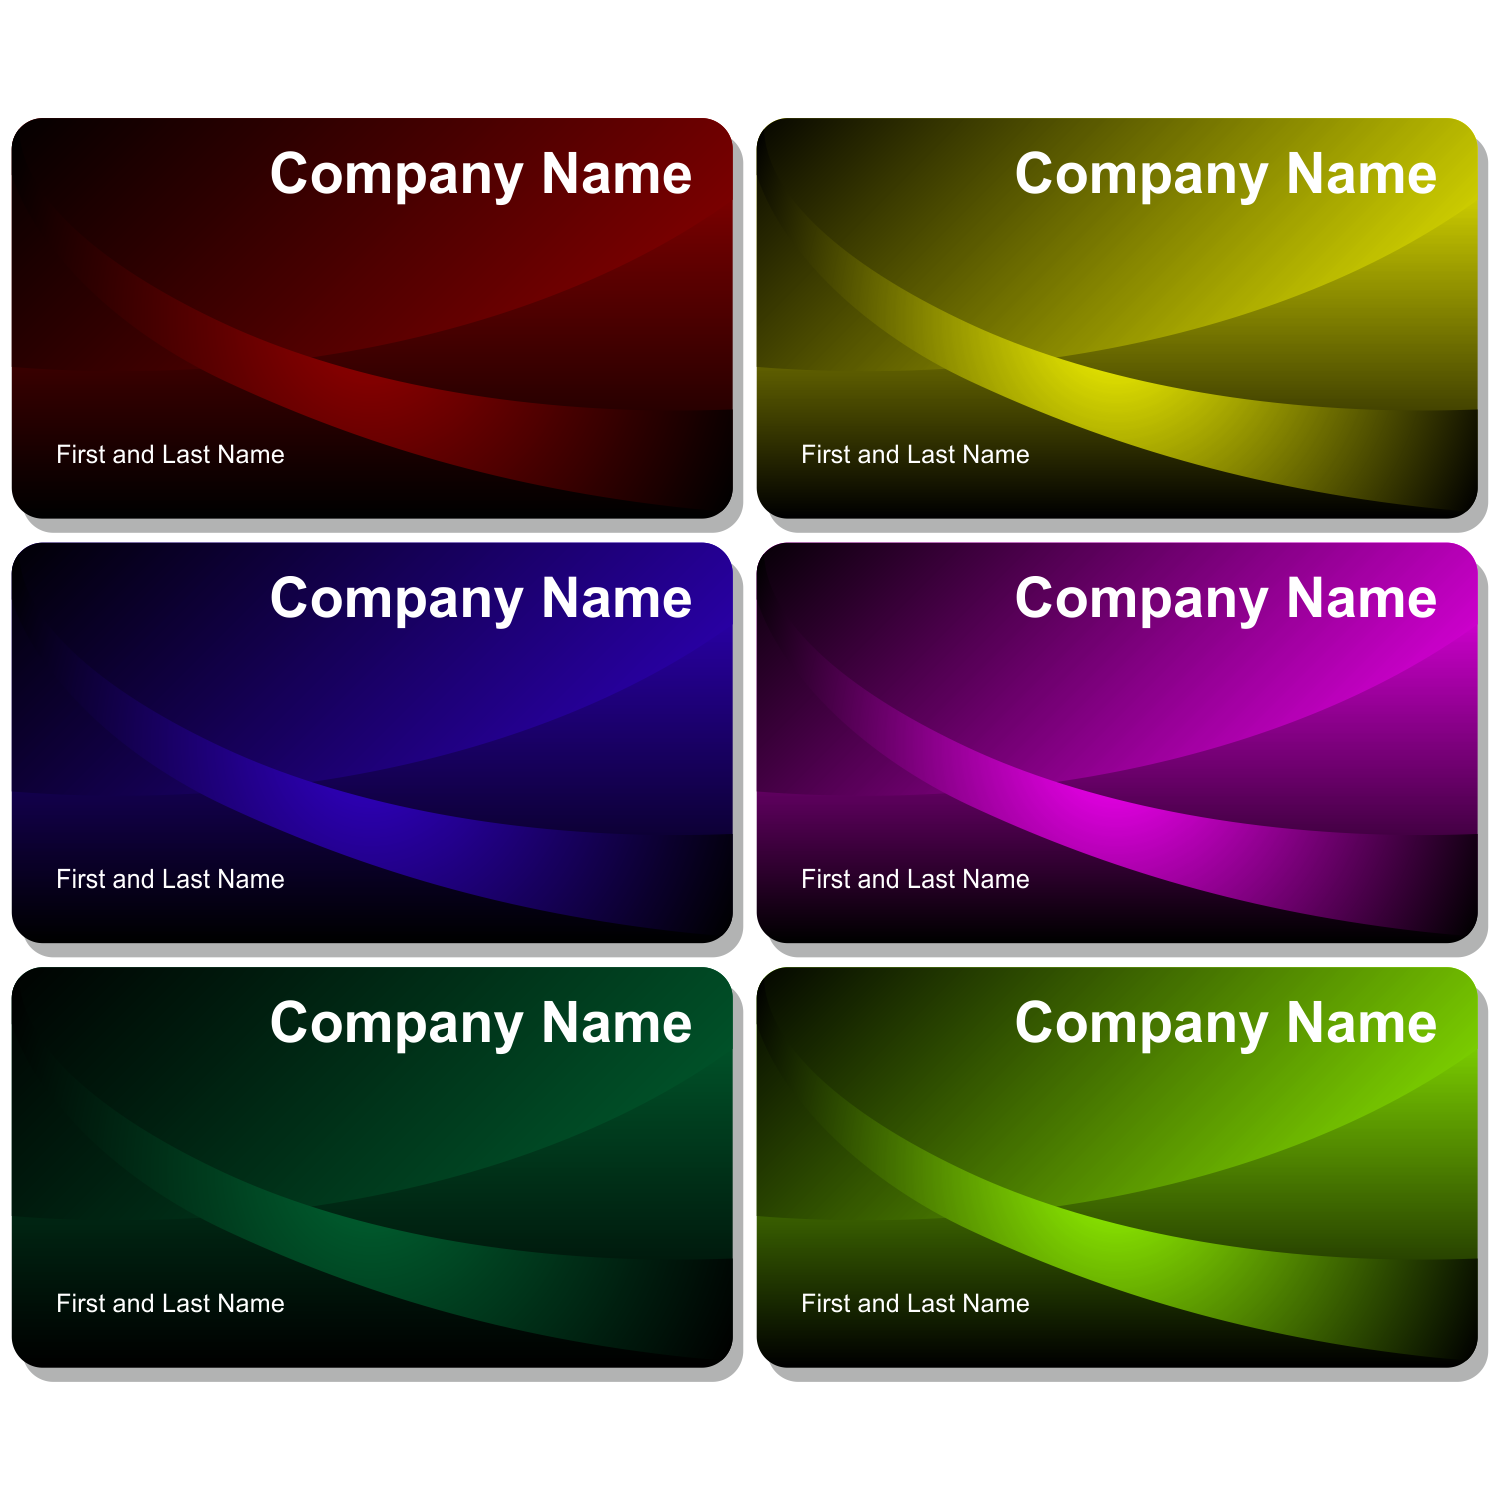 PNG For Business Use - 162304